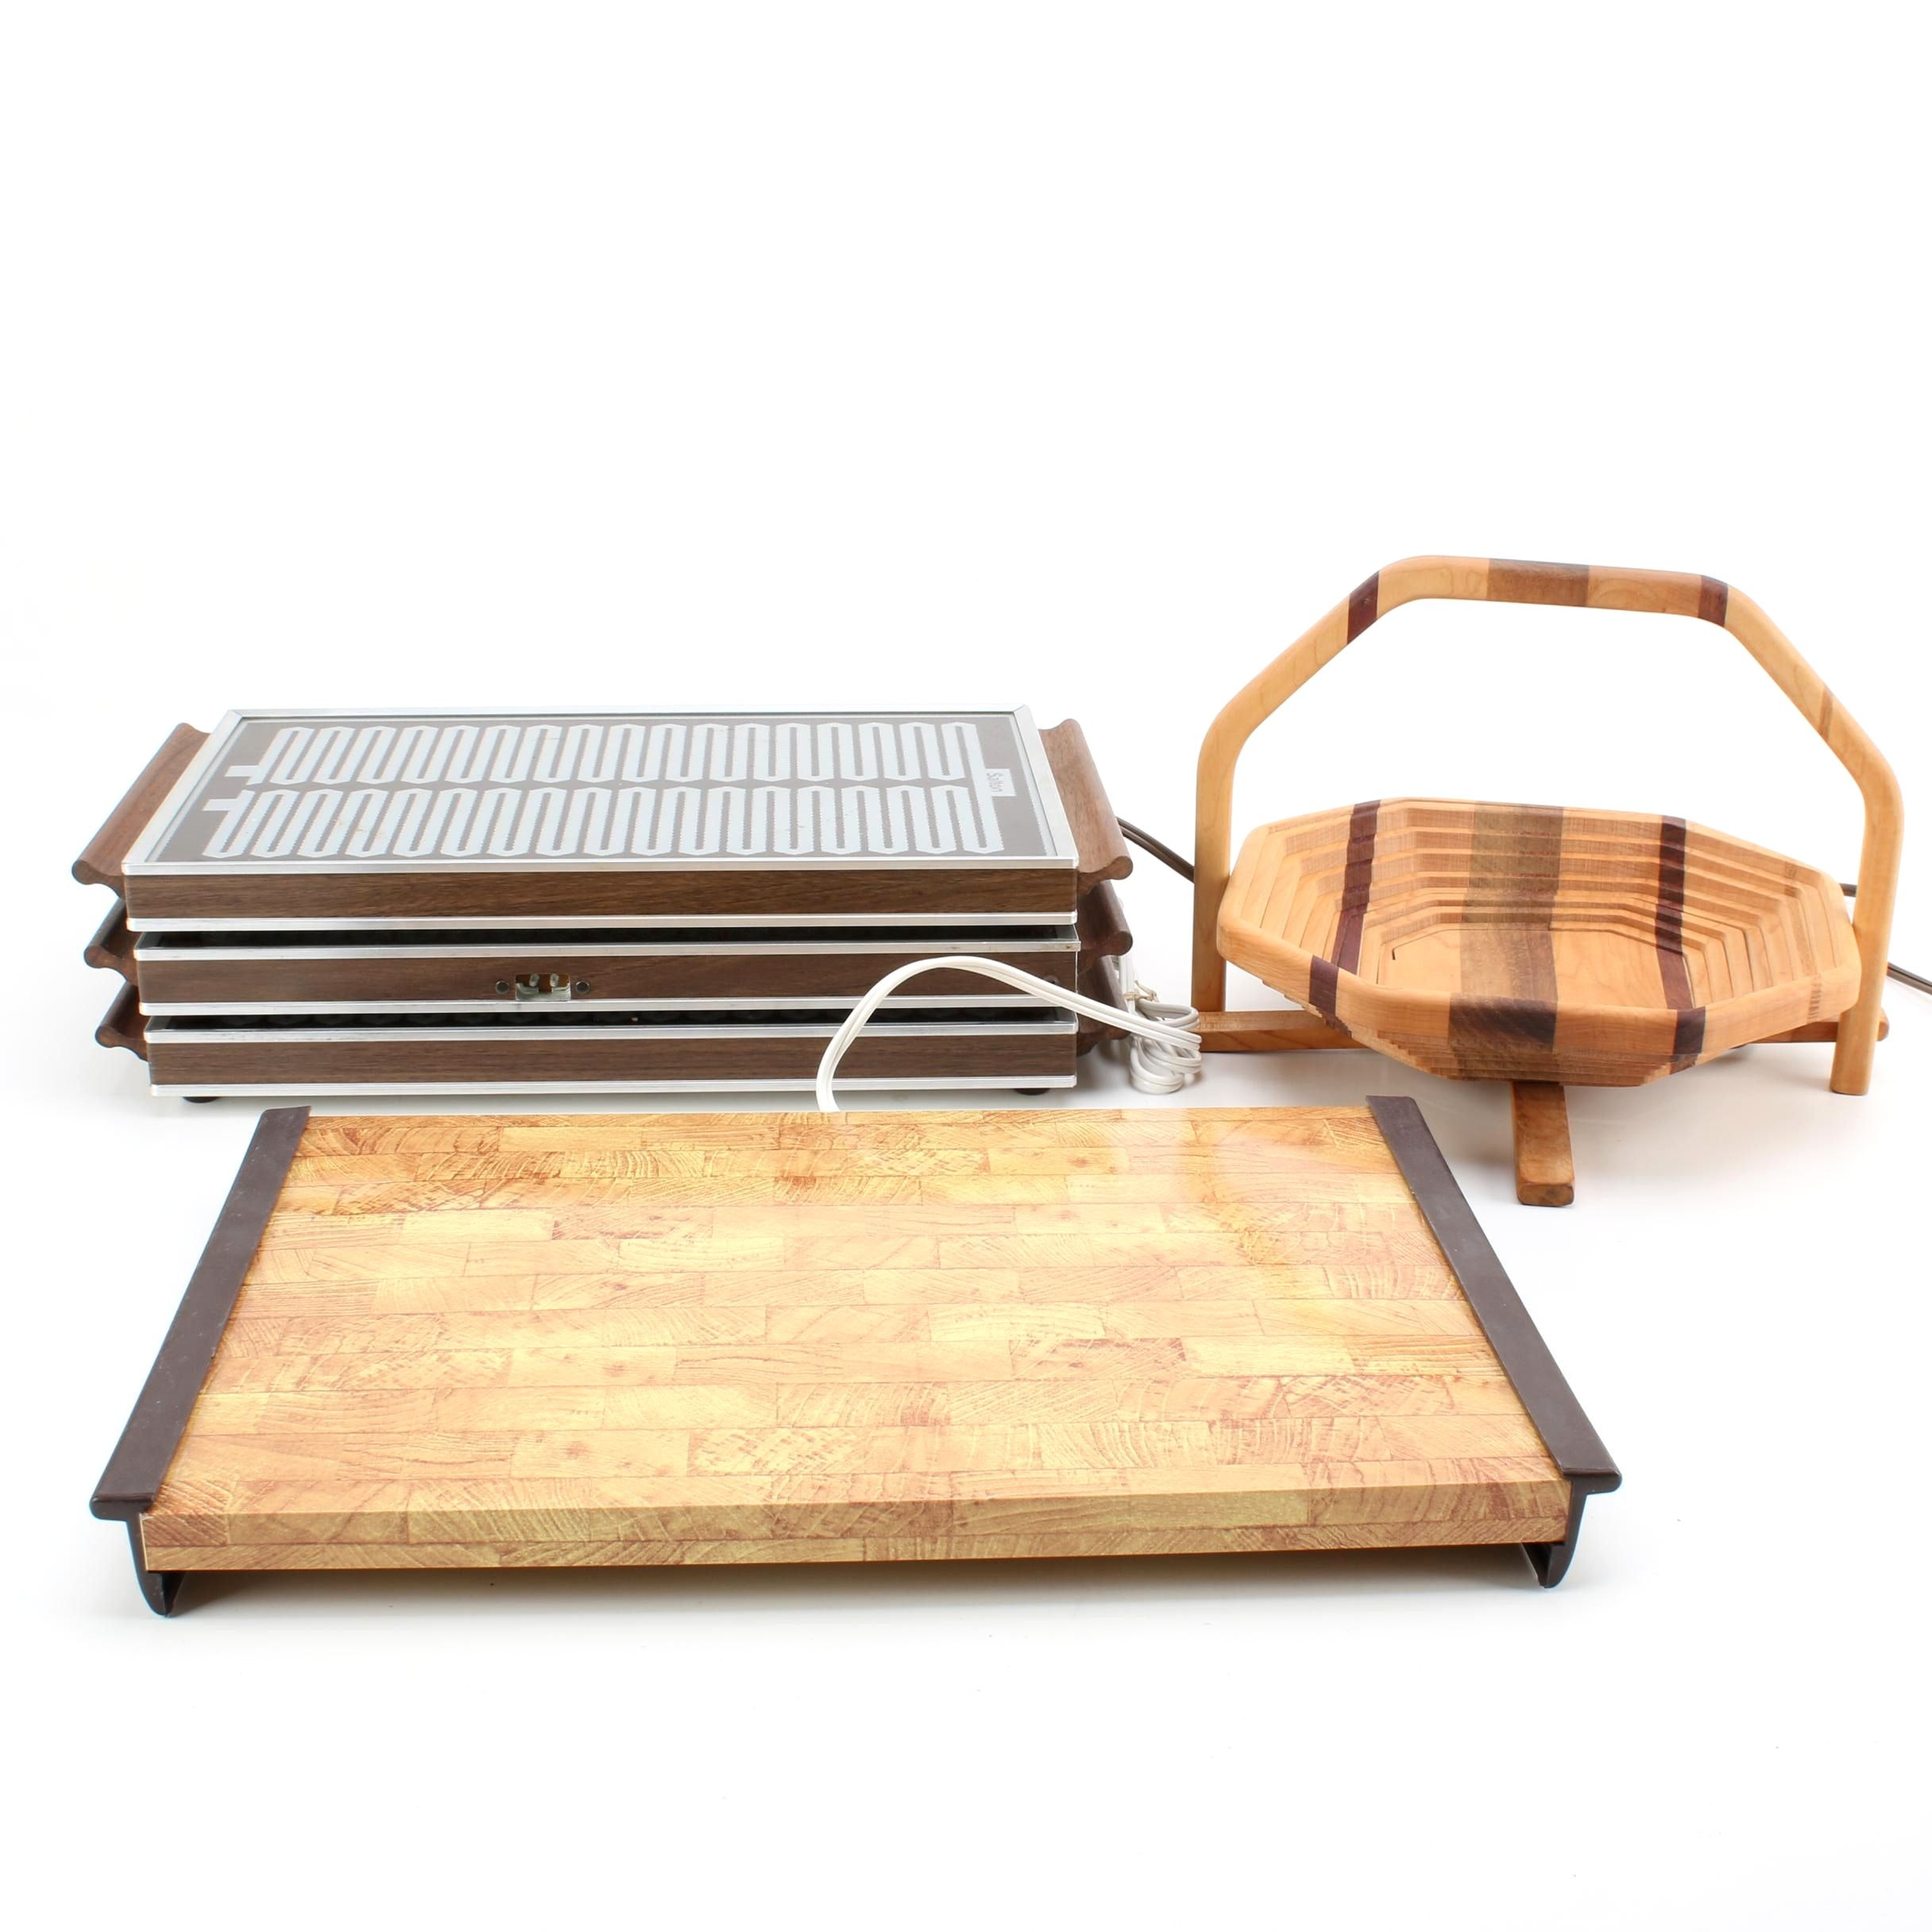 Warm-O-Tray and Salton Hotray Food Wamers and Wood Fruit Basket